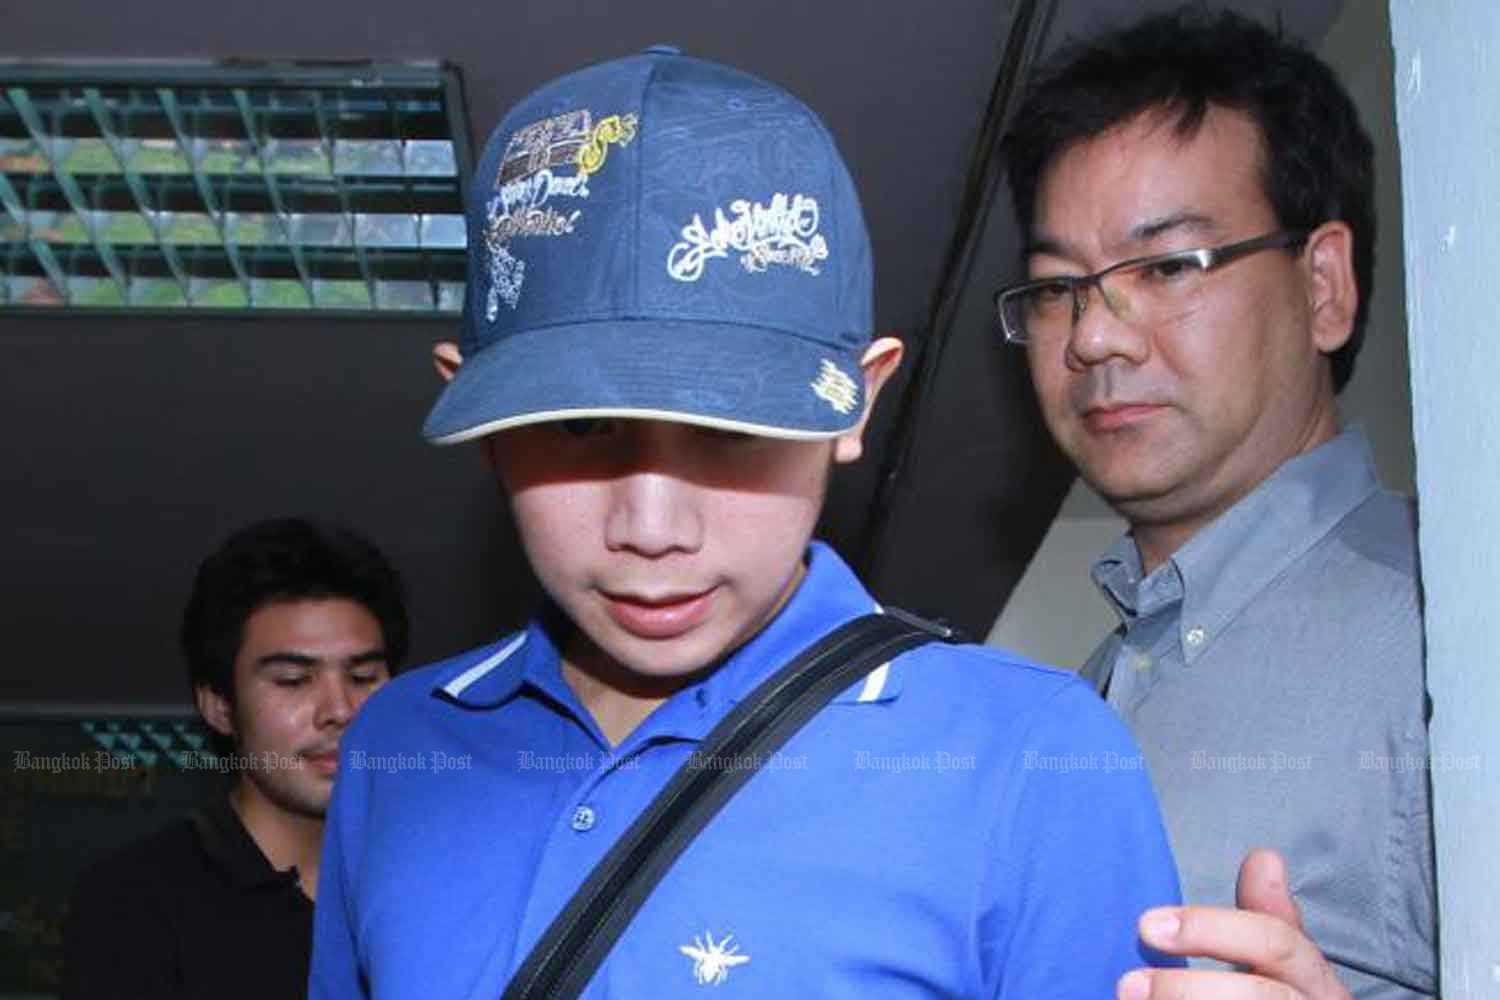 Vorayuth Yoovidhya, the youngest son of Red Bull executive Chalerm Yoovidhya, arrives at the Police General Hospital for a blood test after his hit-and-run incident in Bangkok in September 2012 (File photo: Somchai Poomlard).